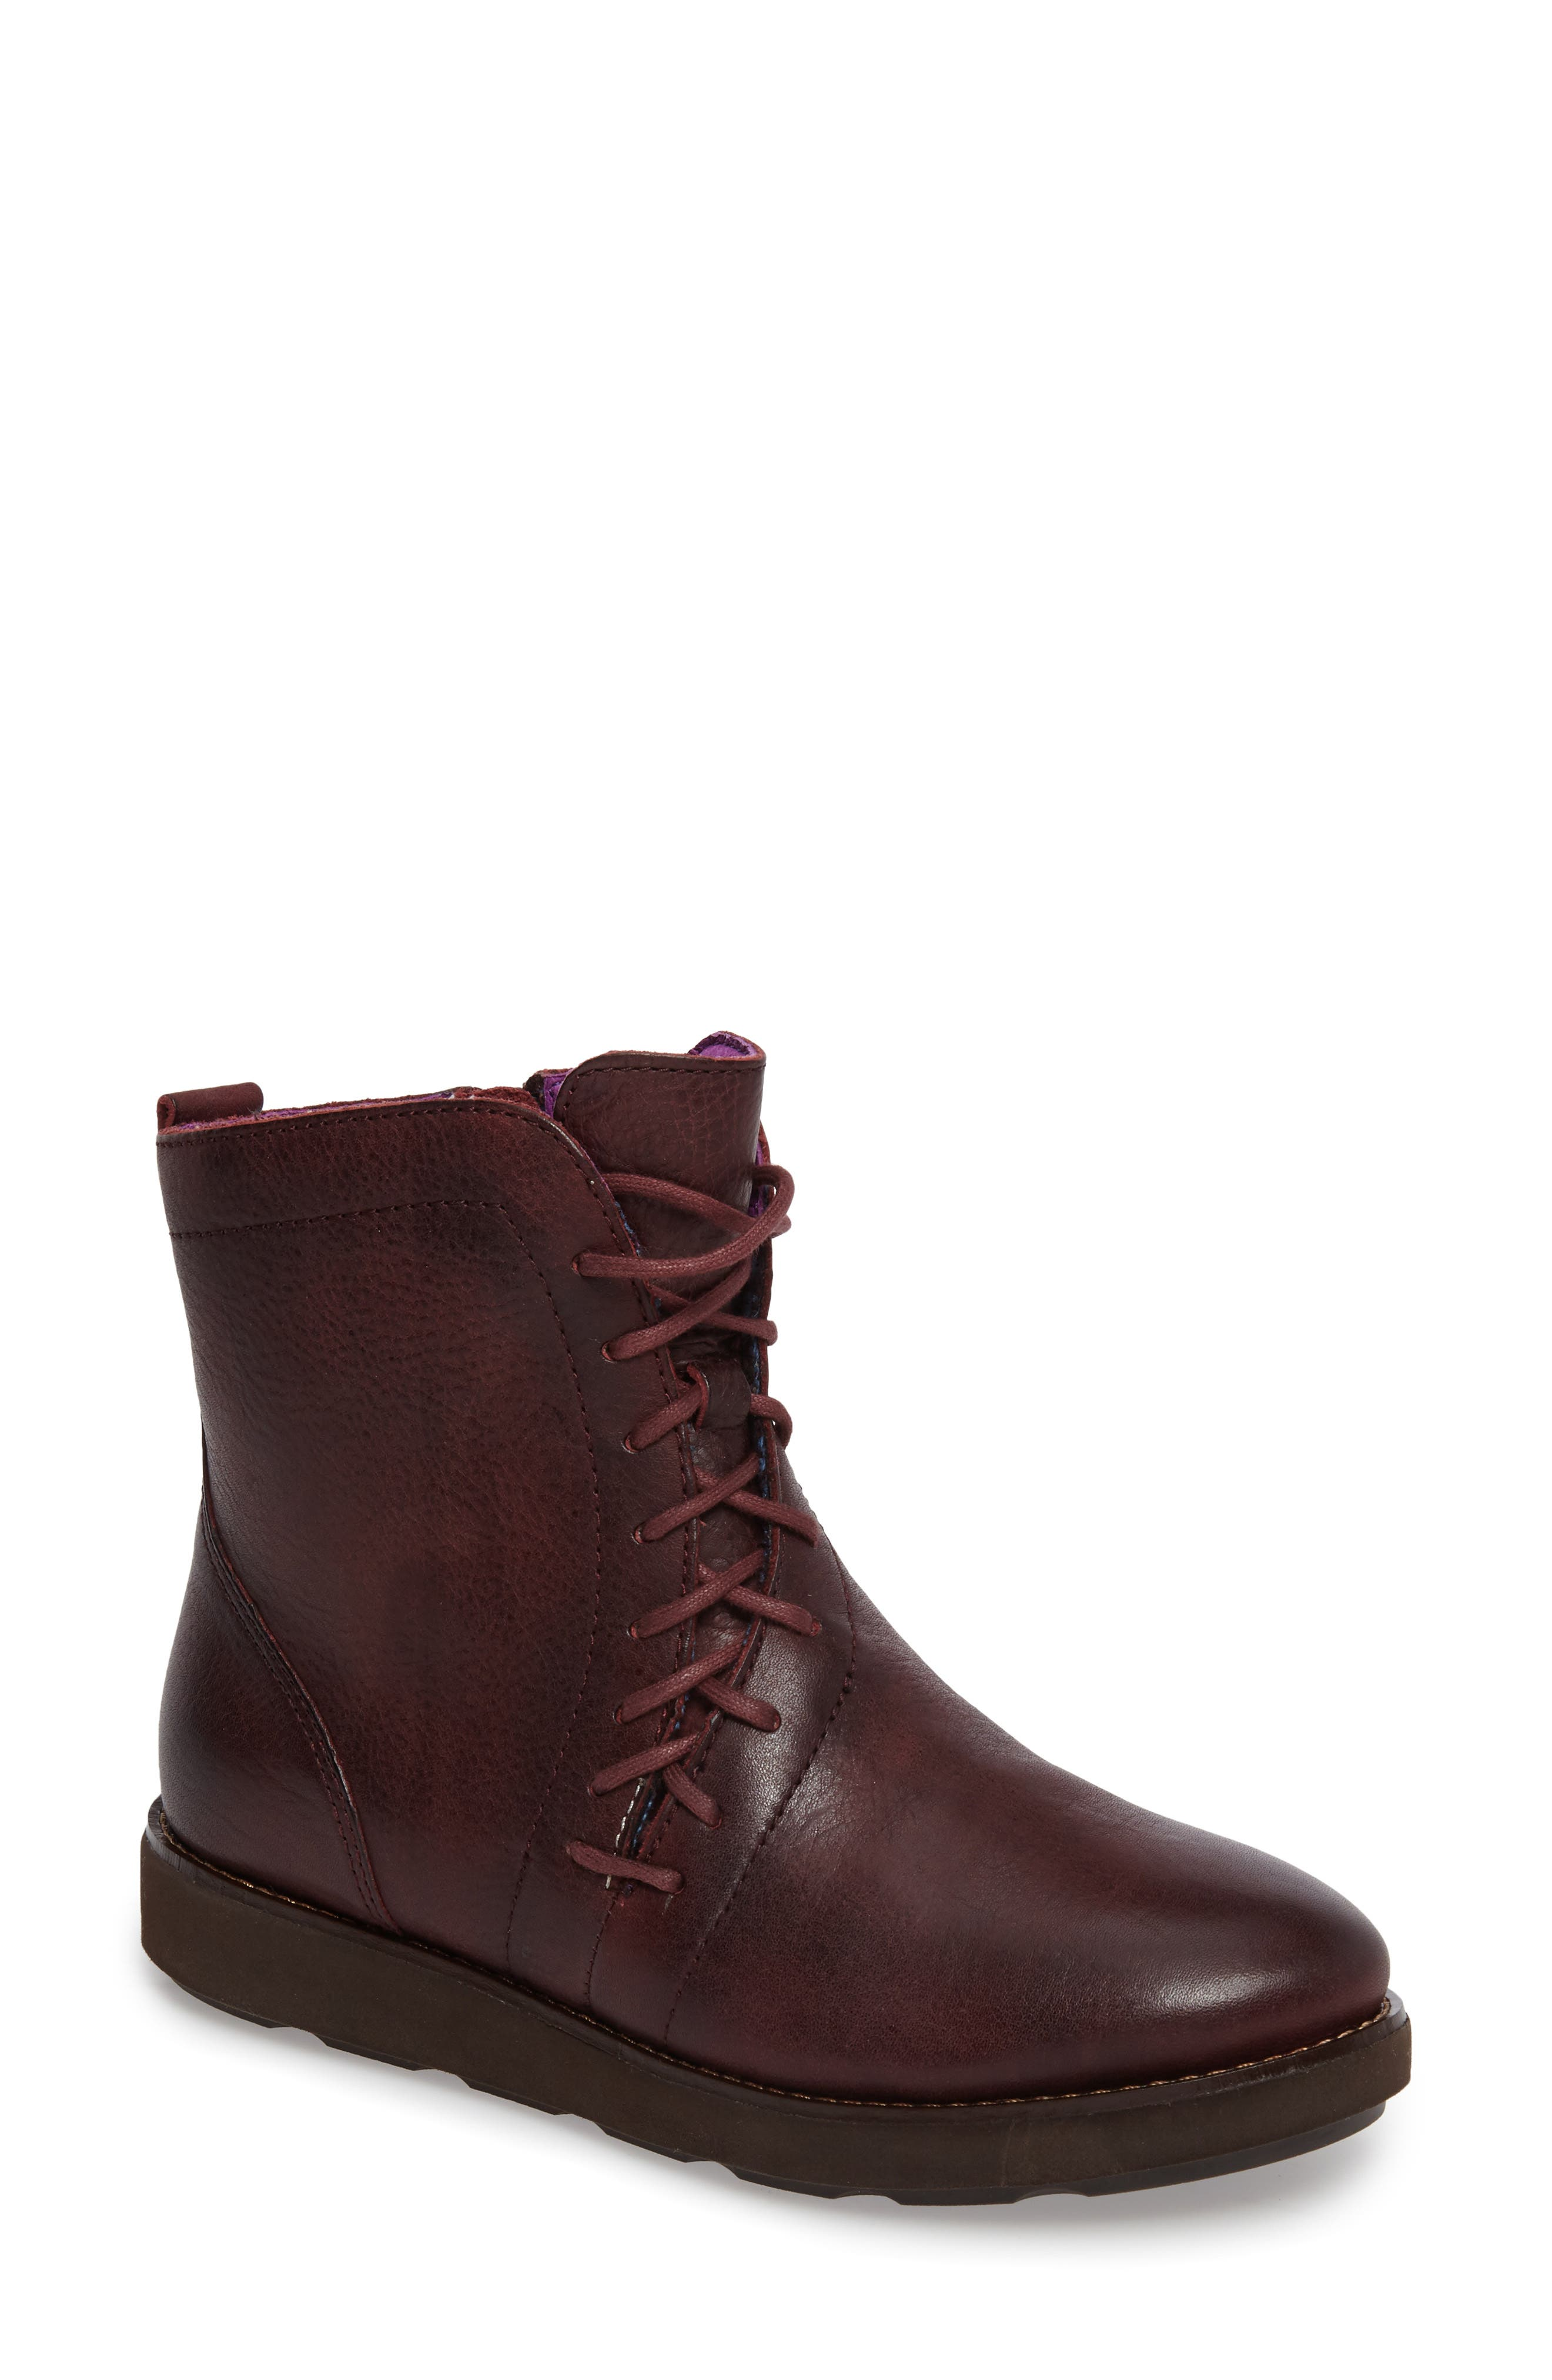 Corset II Bootie,                         Main,                         color, Marsala Red Leather